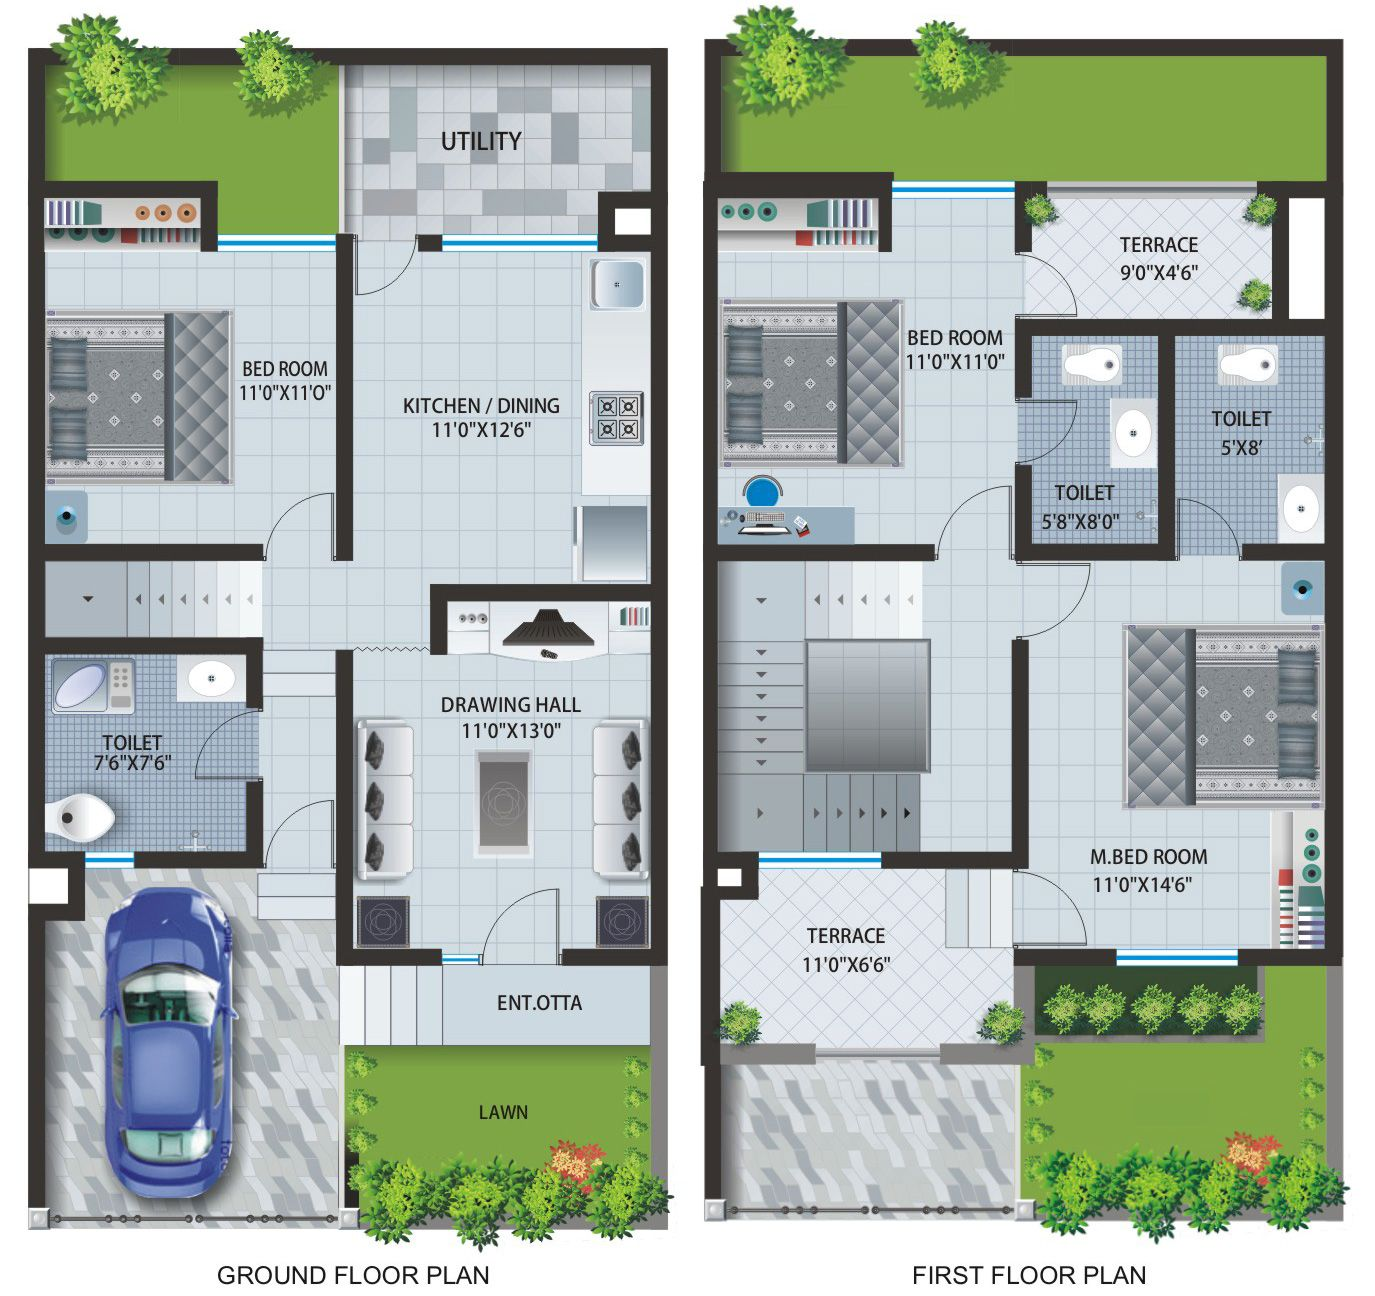 floor plans of apartments row houses at caroline baner